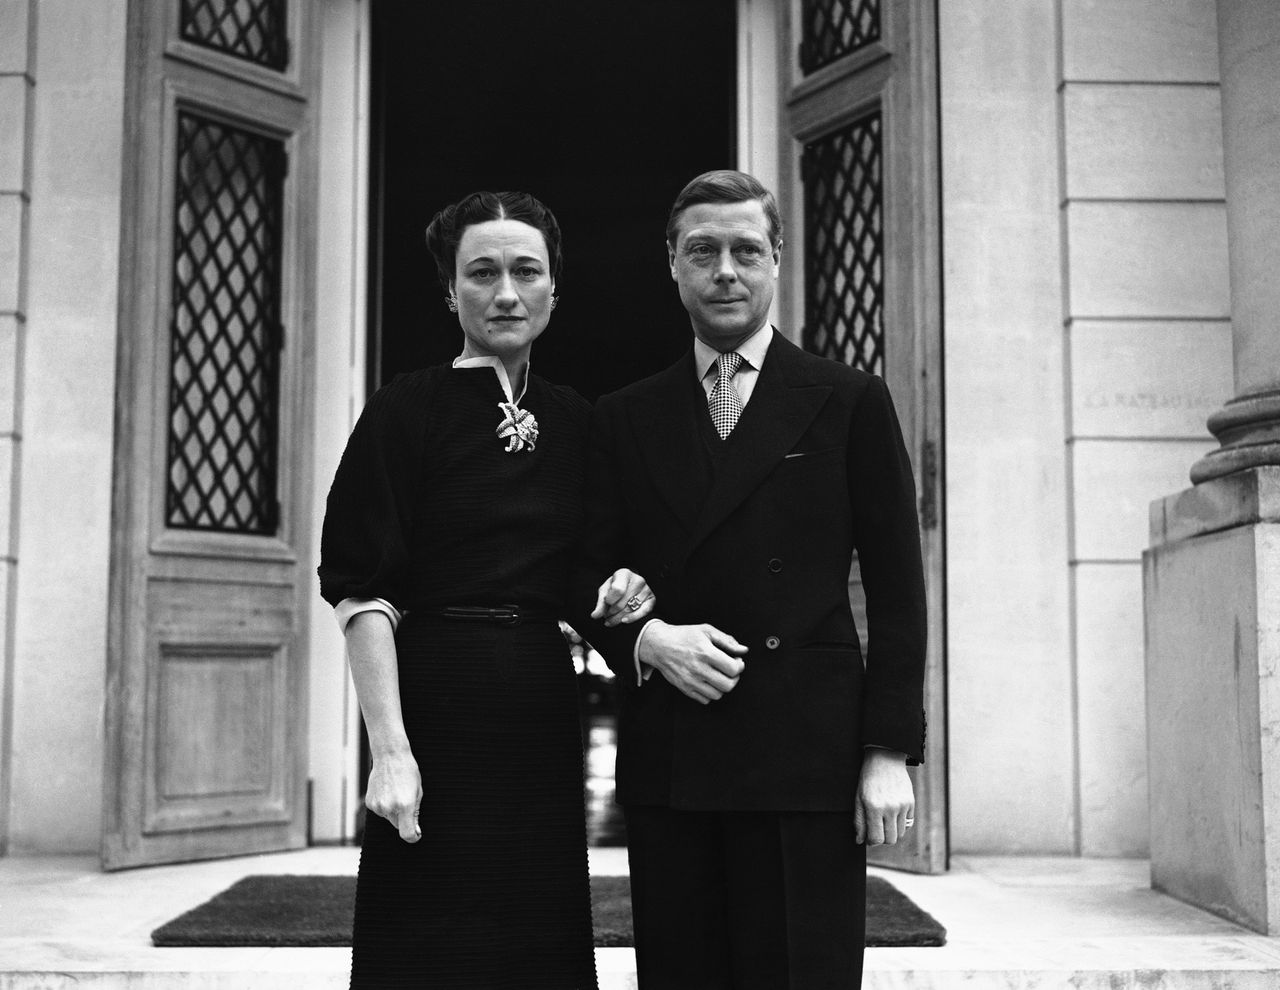 FILE - In this Jan. 2, 1939 file photo the Duke Windsor and Duchess of Windsor Wallis Simpson stand at the entrance of the Villa De La Croe in Cap Antibes, Cannes, where they celebrated the New Year. Watch out, Kate Middleton. Another royal consort is in the limelight as the royal wedding approaches. Wallis Simpson, the American divorcee who scandalized Britain and brought down a king in the 1930s, is back in style.(AP Photo, File)